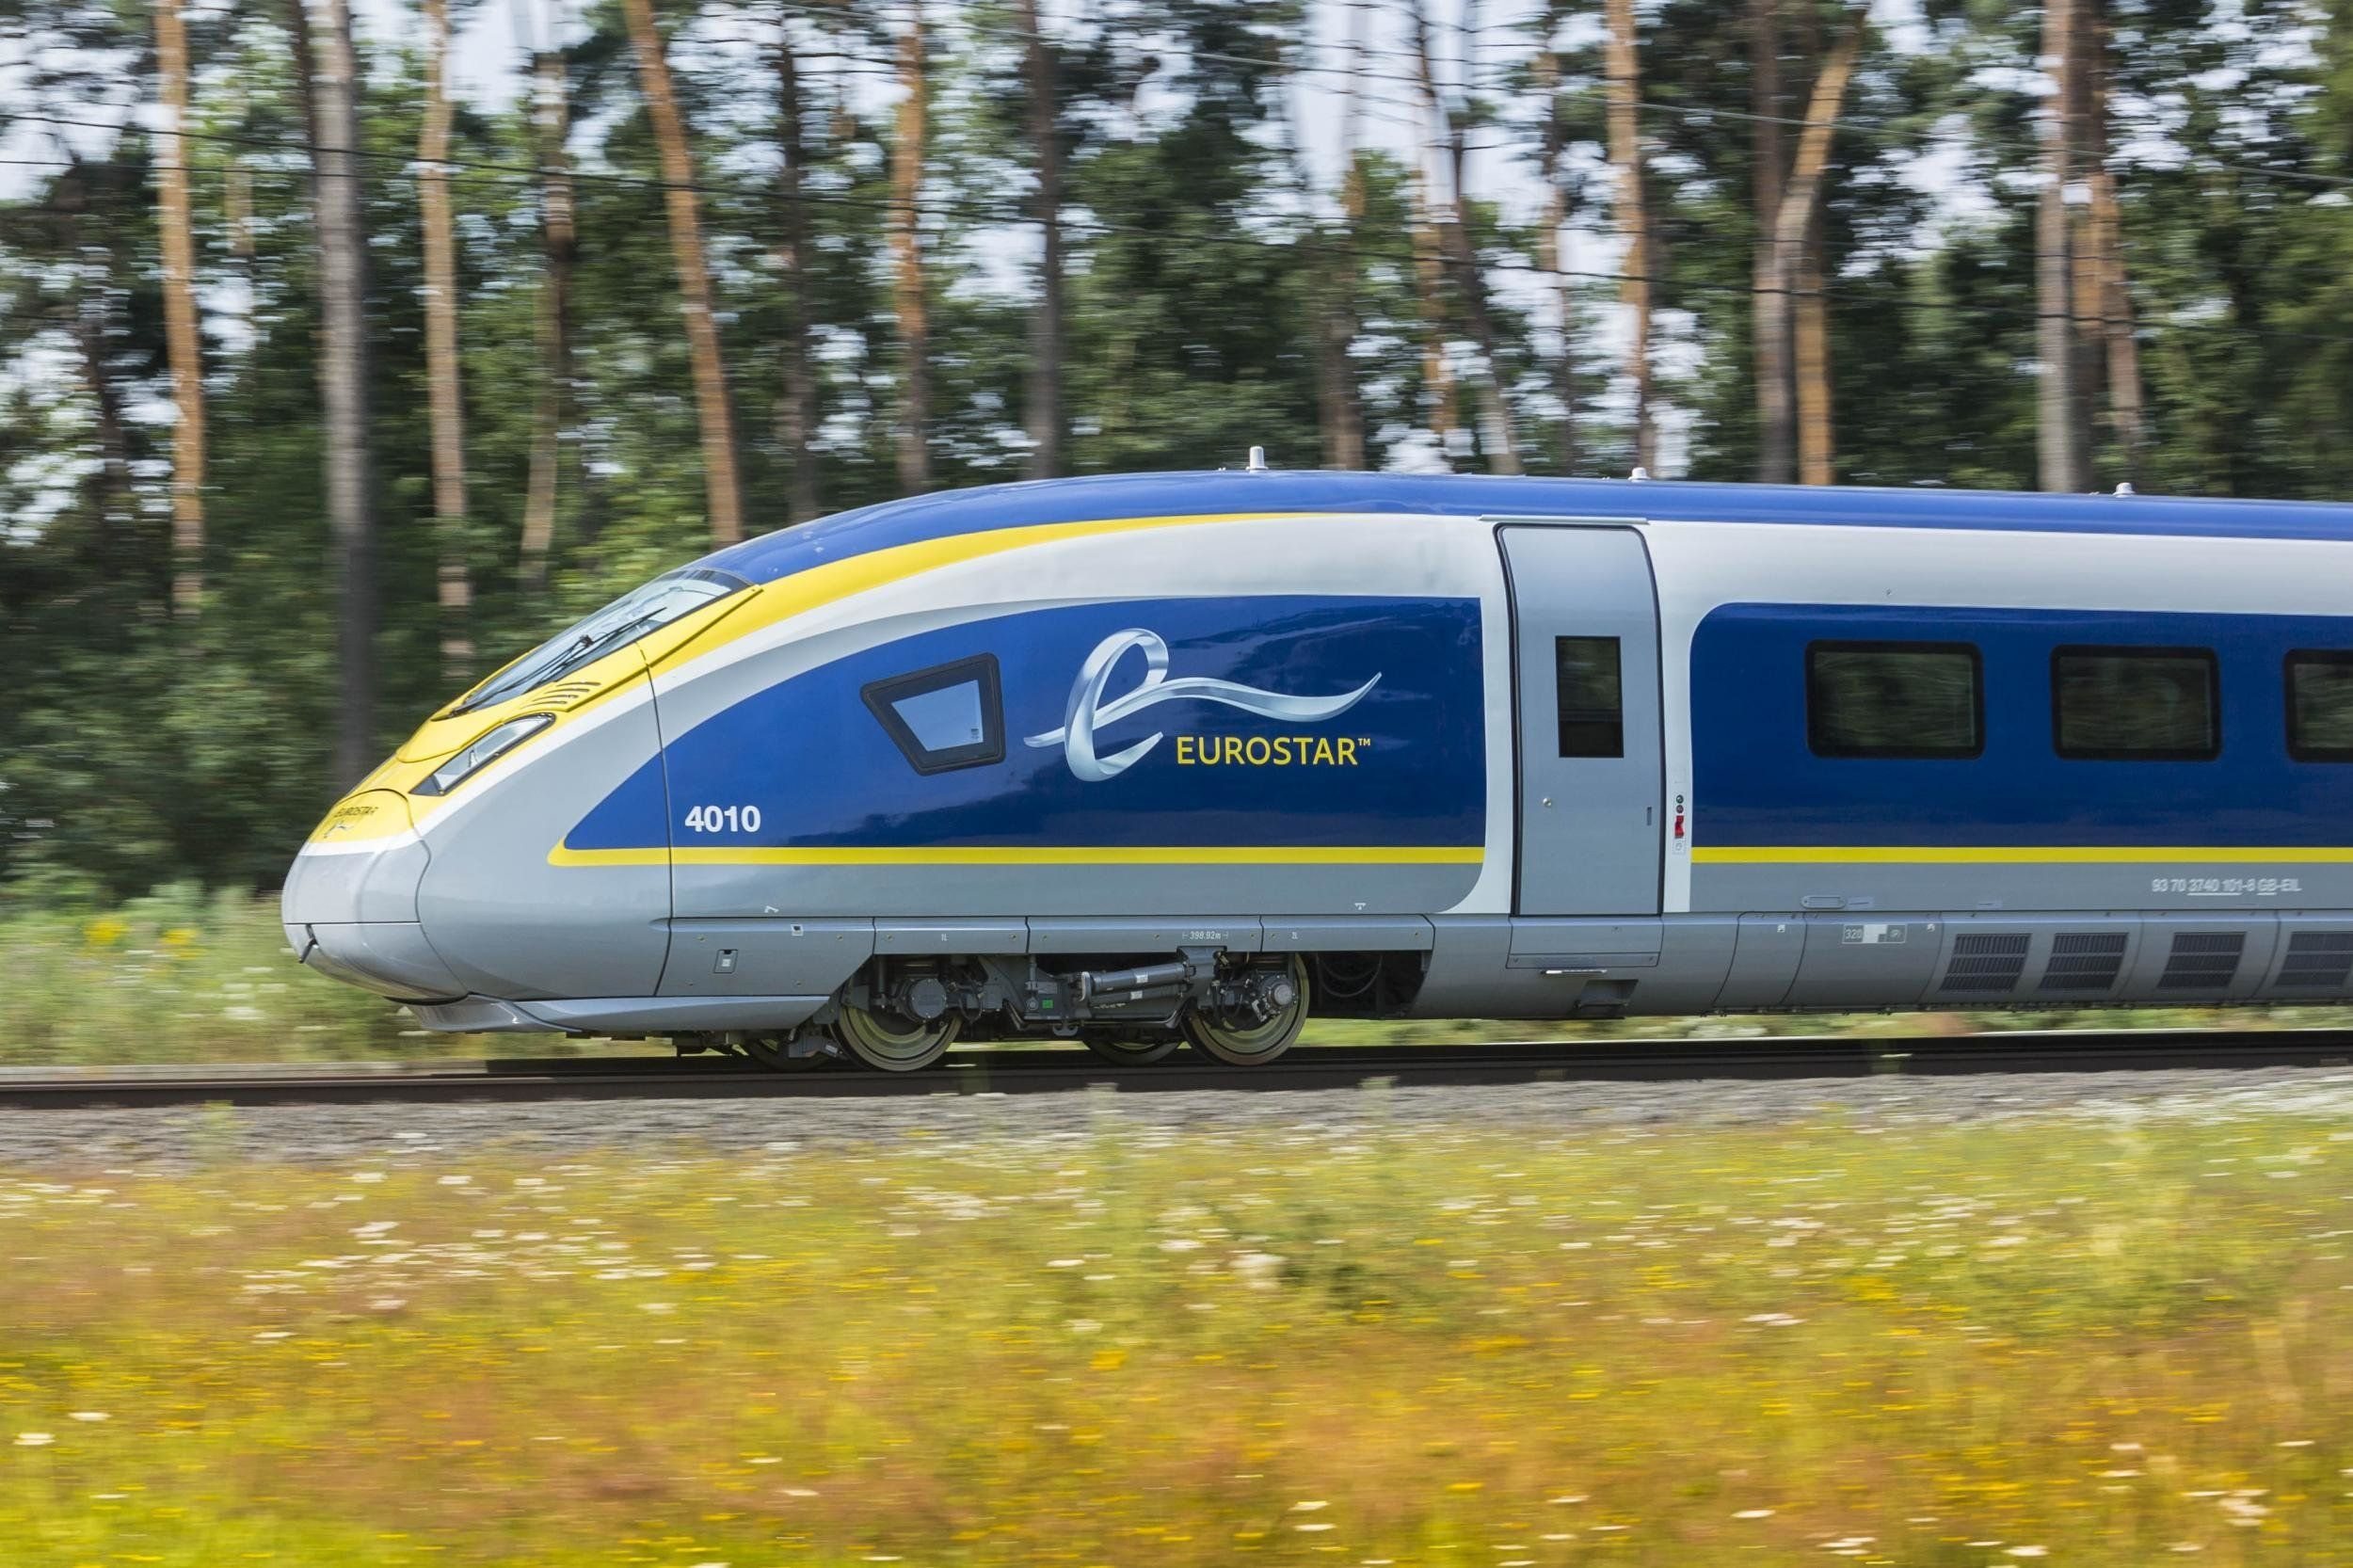 Eurostar Is Selling A £30 Ticket To Amsterdam – But Is It Too Good To Be